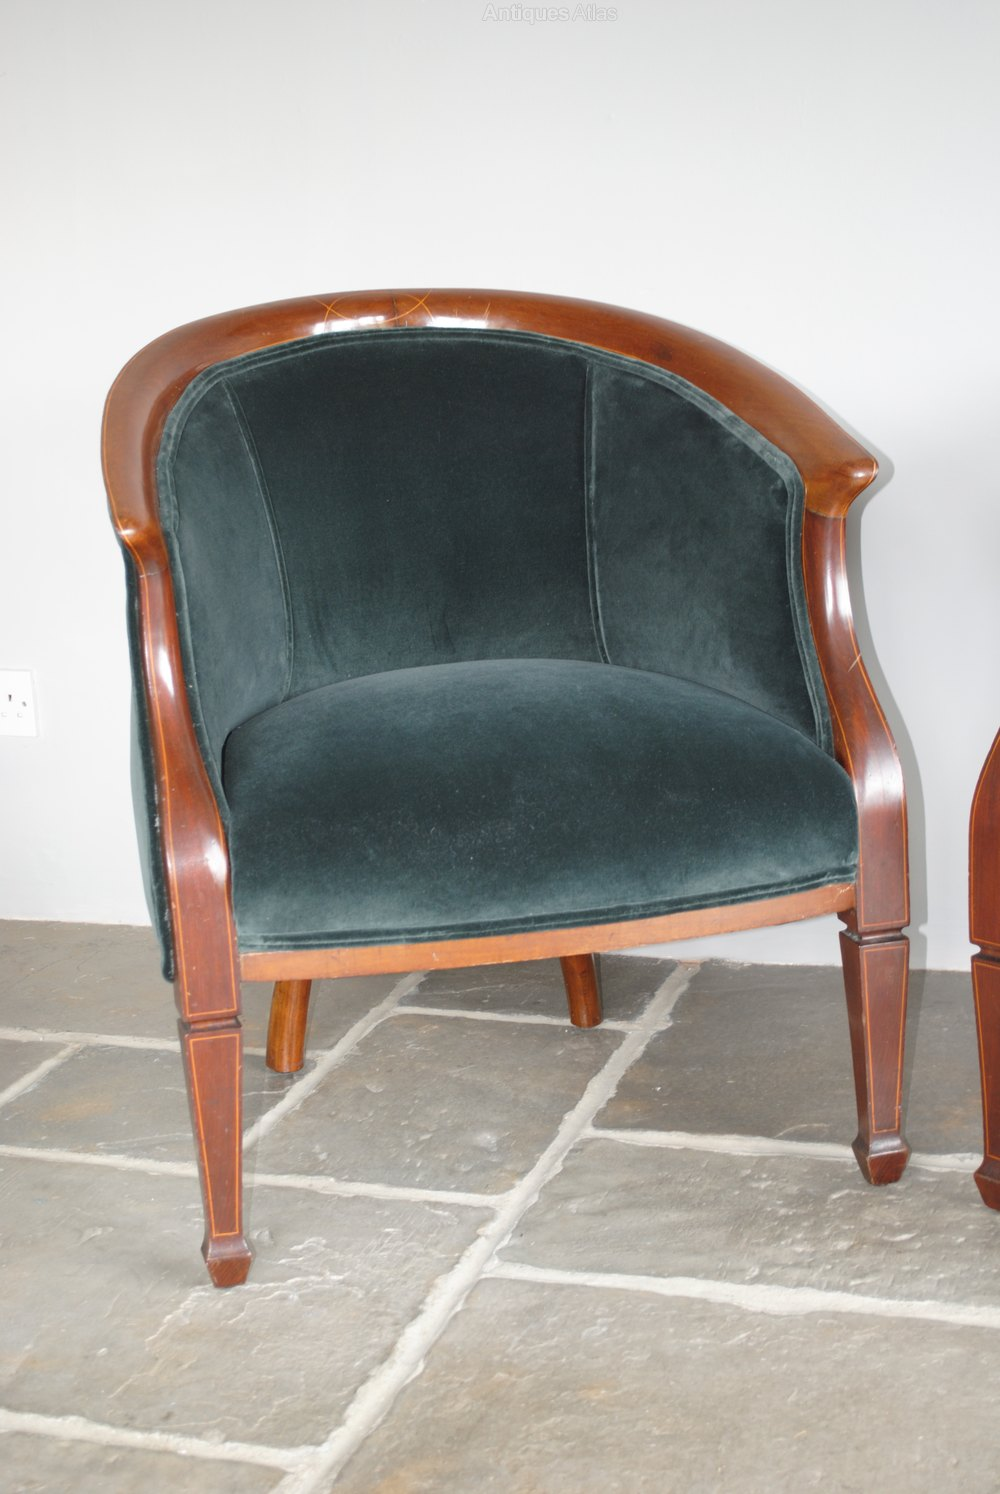 tub chair grey master gym fitness pair of antique edwardian chairs, armchairs - antiques atlas